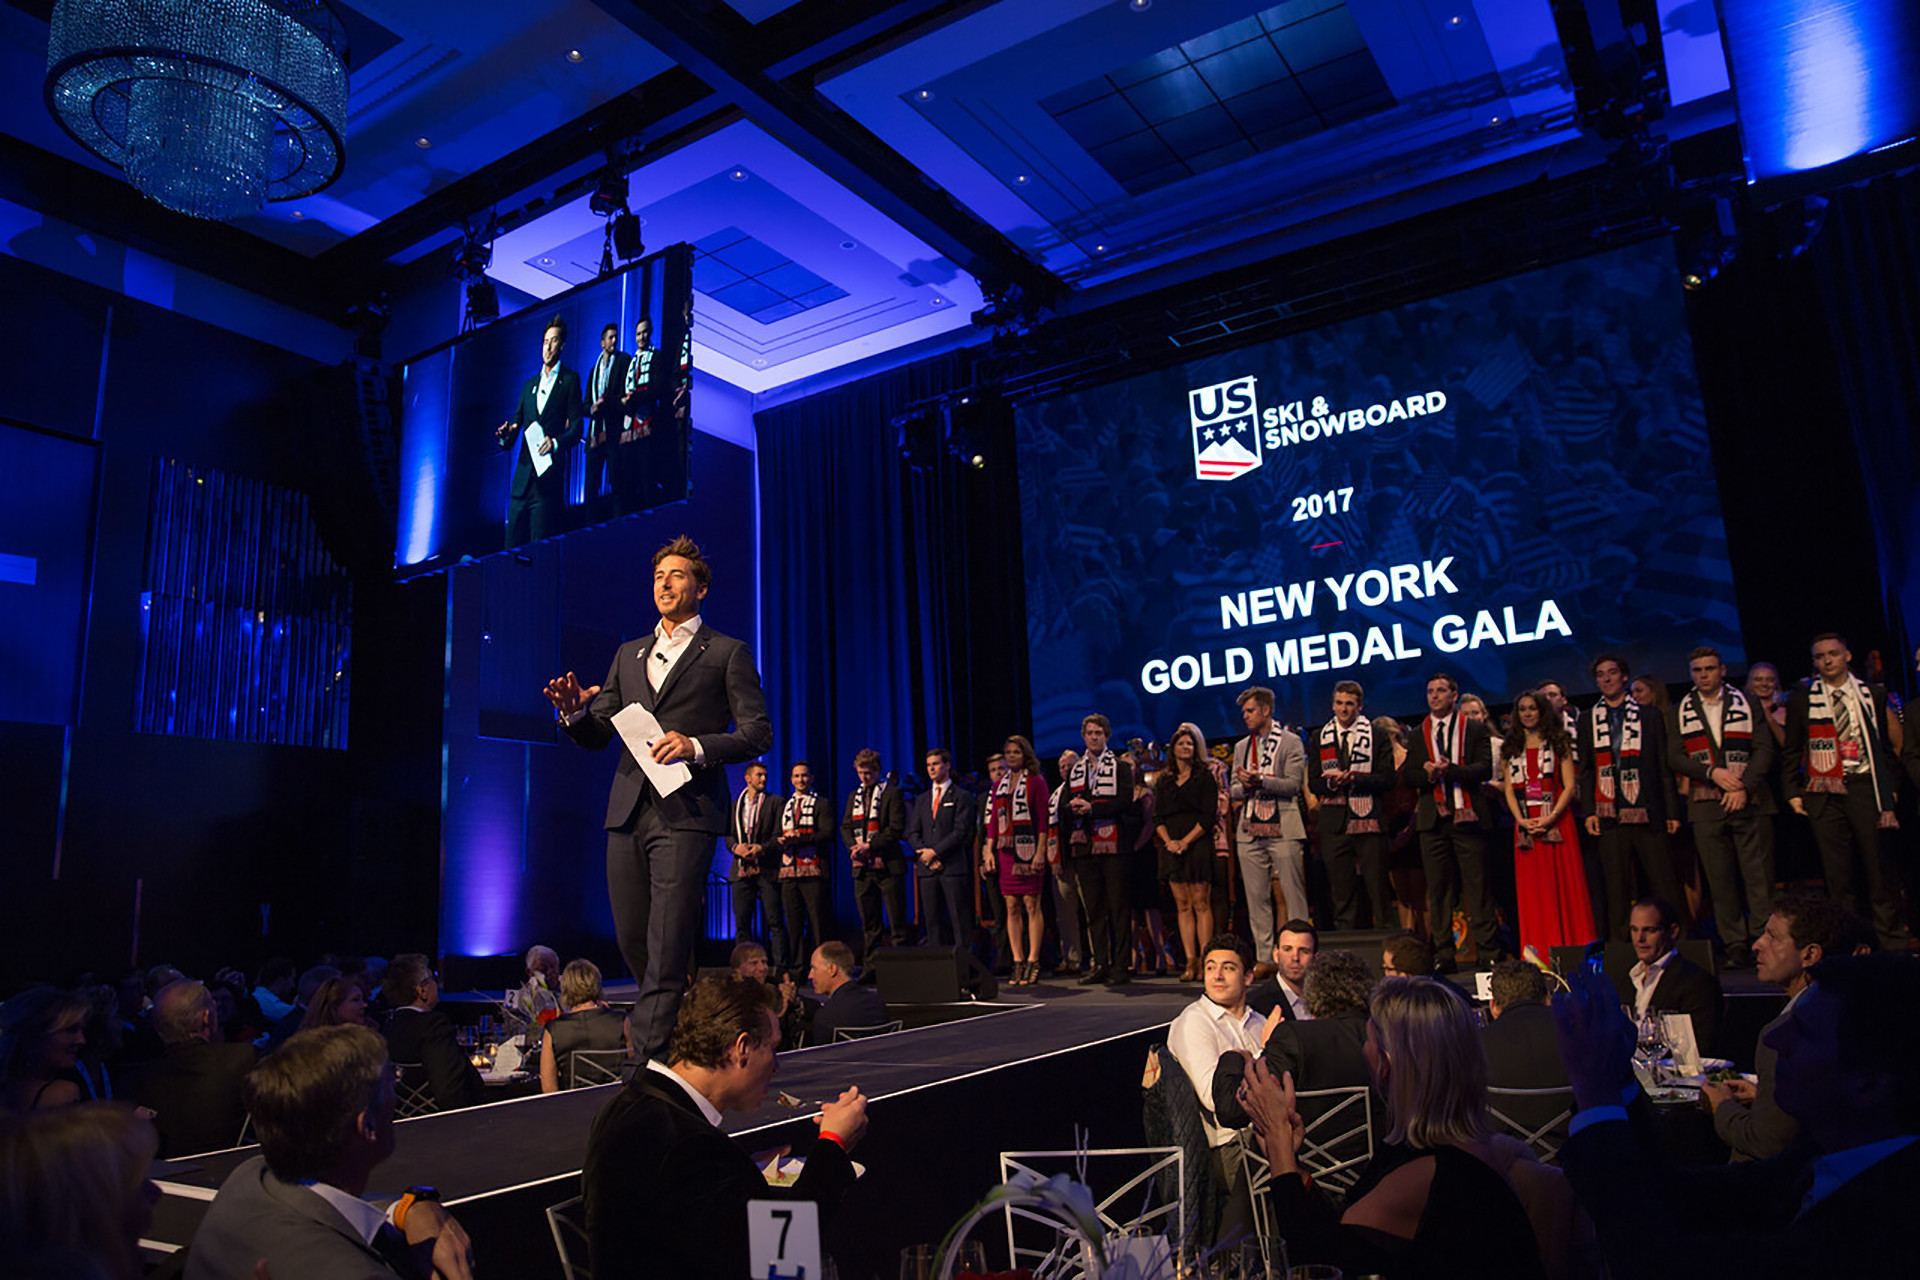 New York City gala dinner to raise funds for U.S. Ski & Snowboard set to sell-out